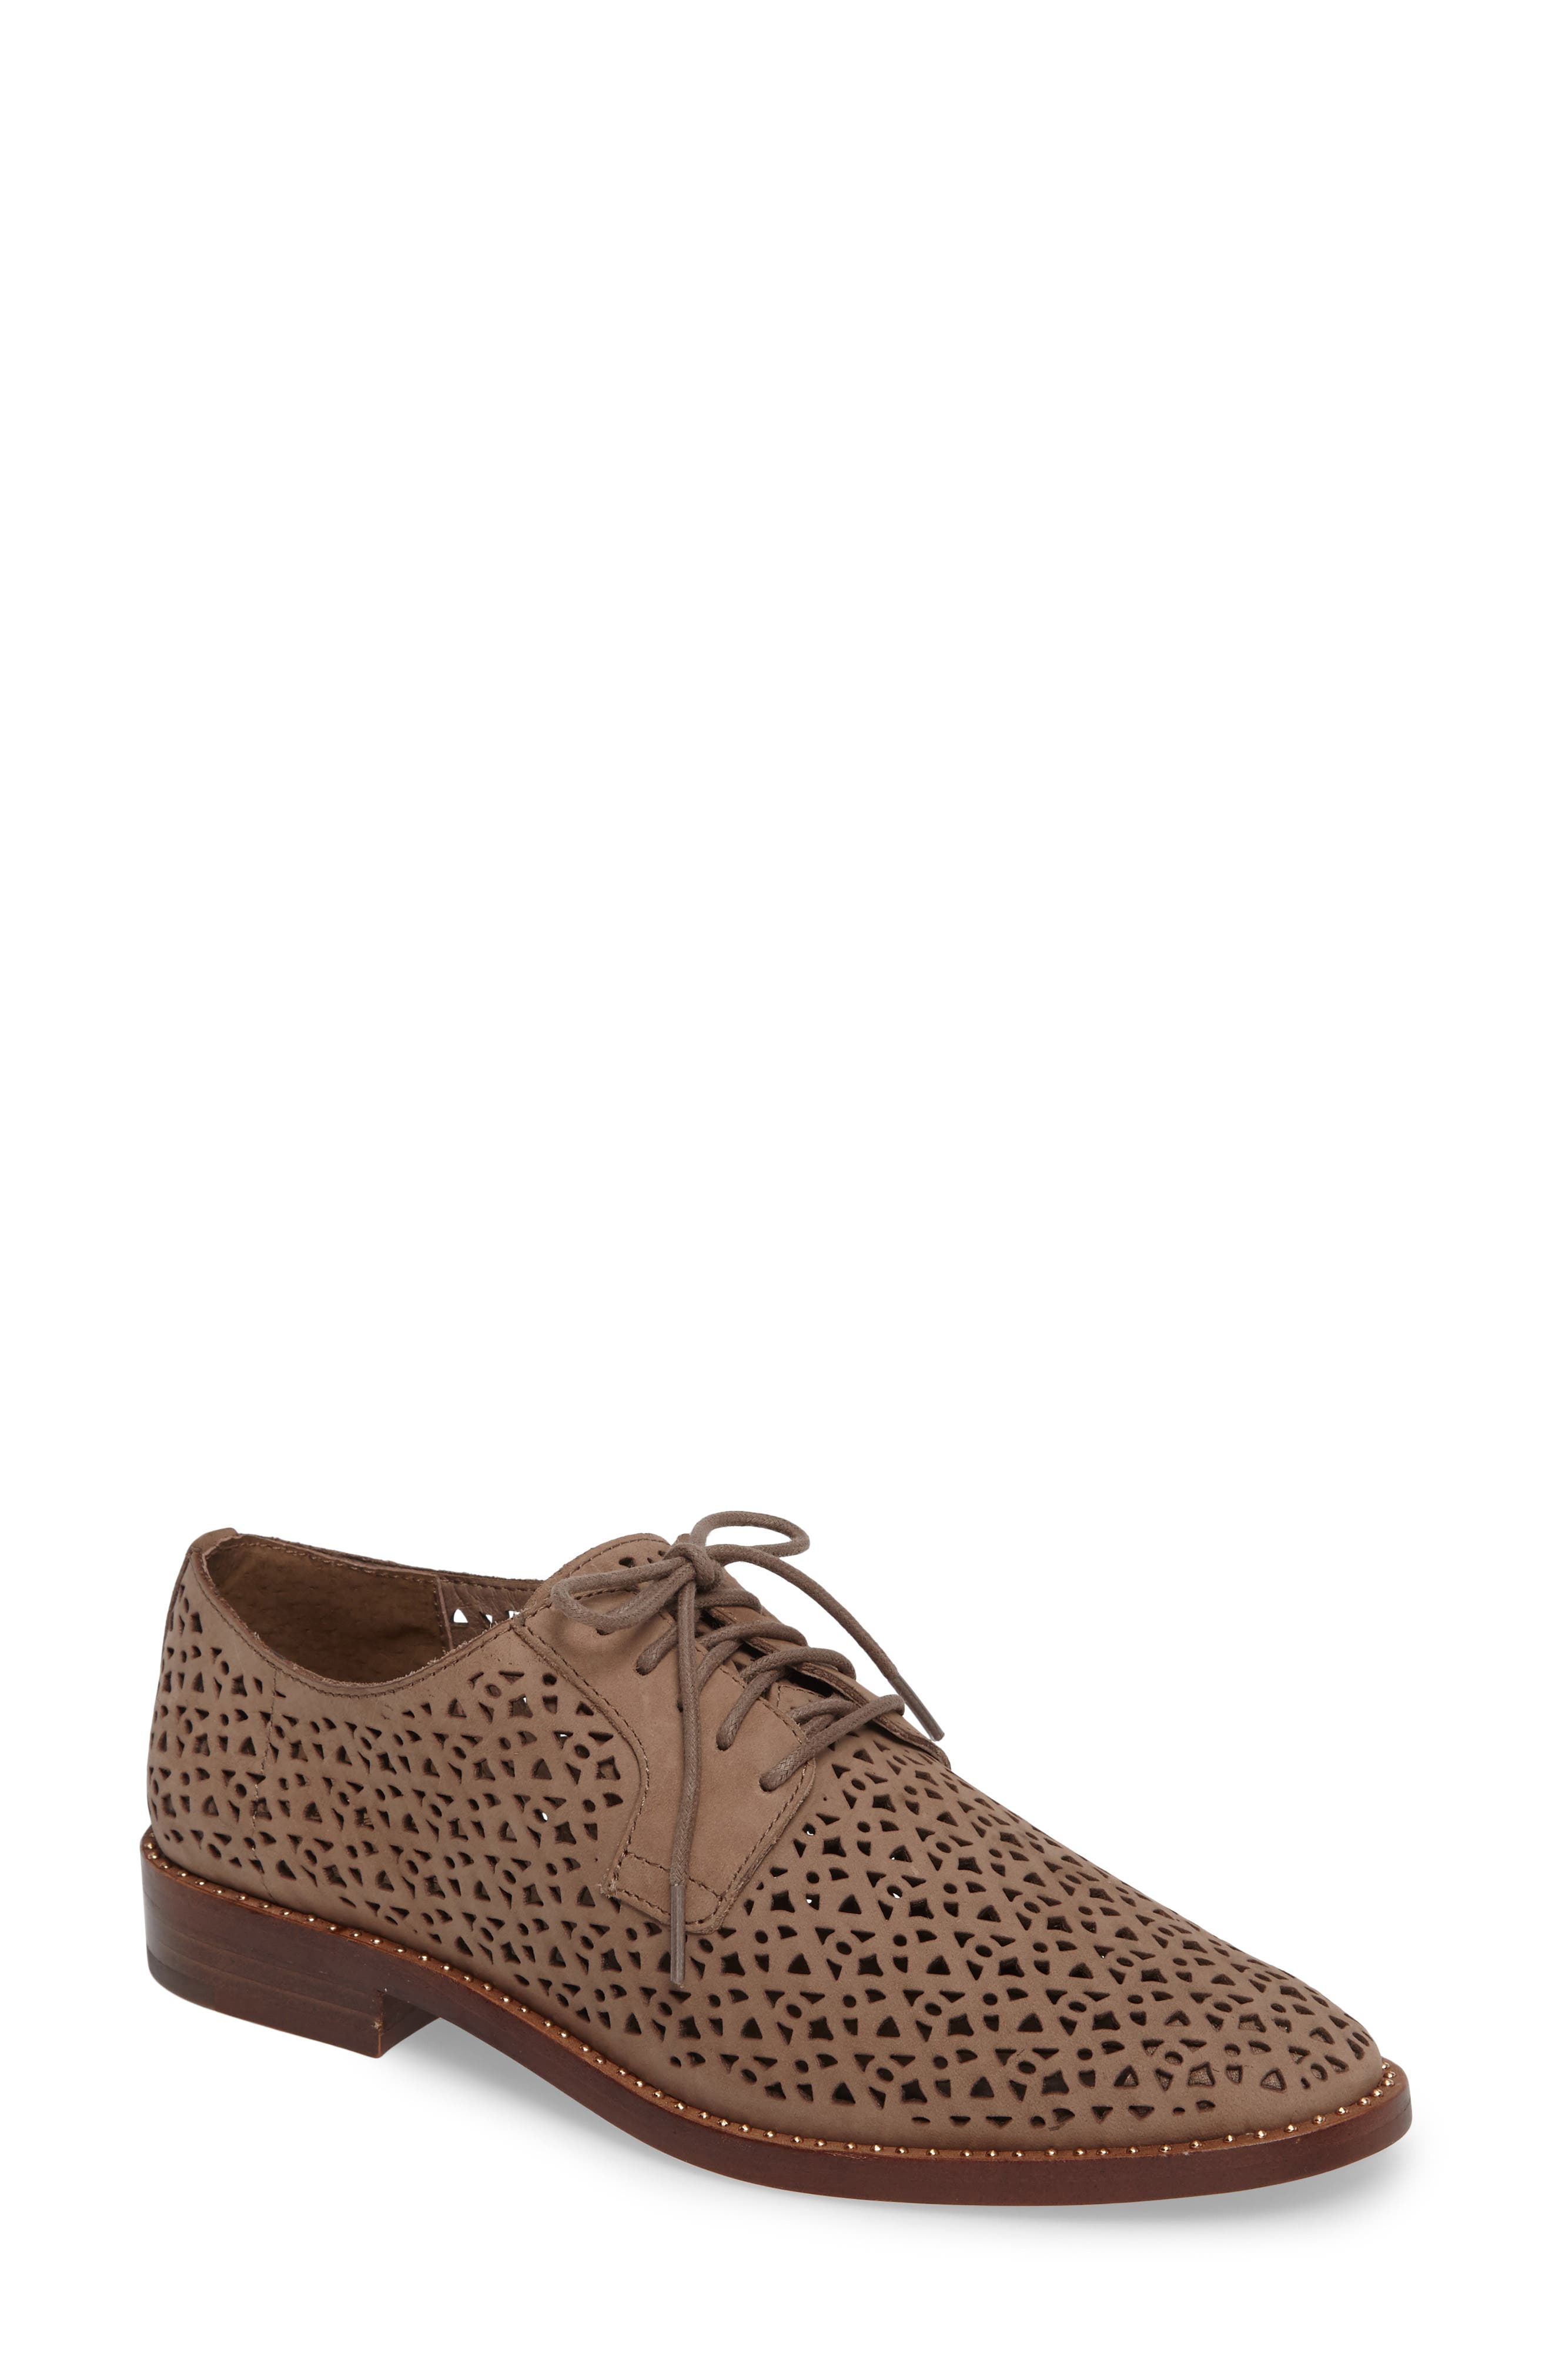 Lesta Geo Perforated Oxford,                         Main,                         color, French Taupe Suede